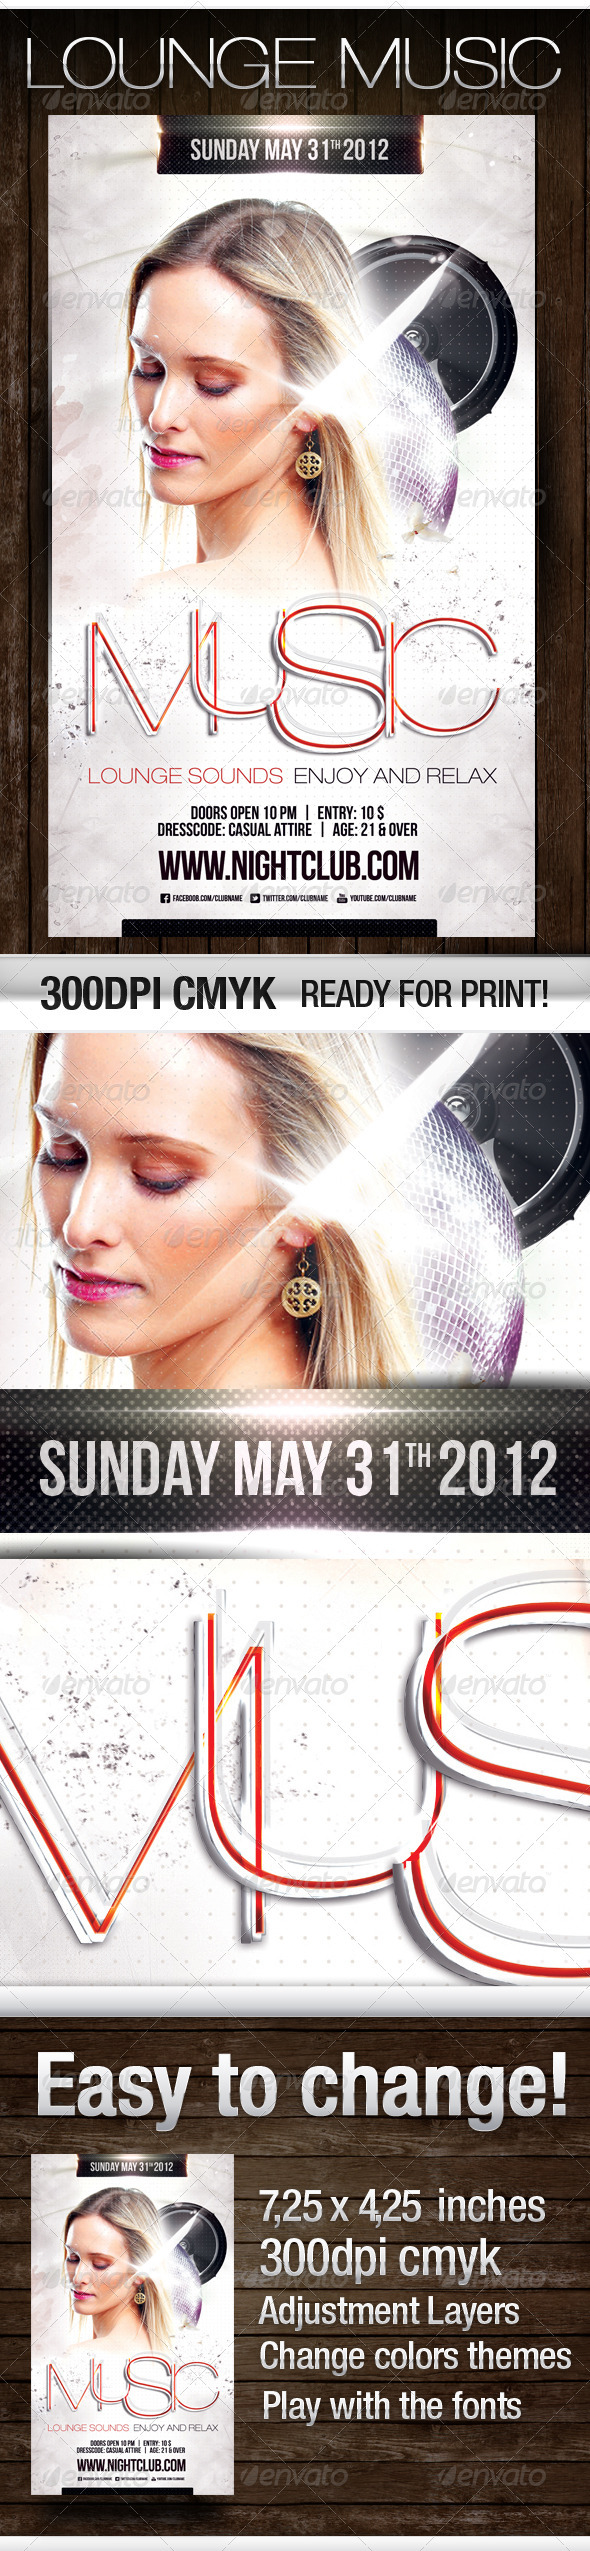 Lounge Music Flyer - Flyers Print Templates